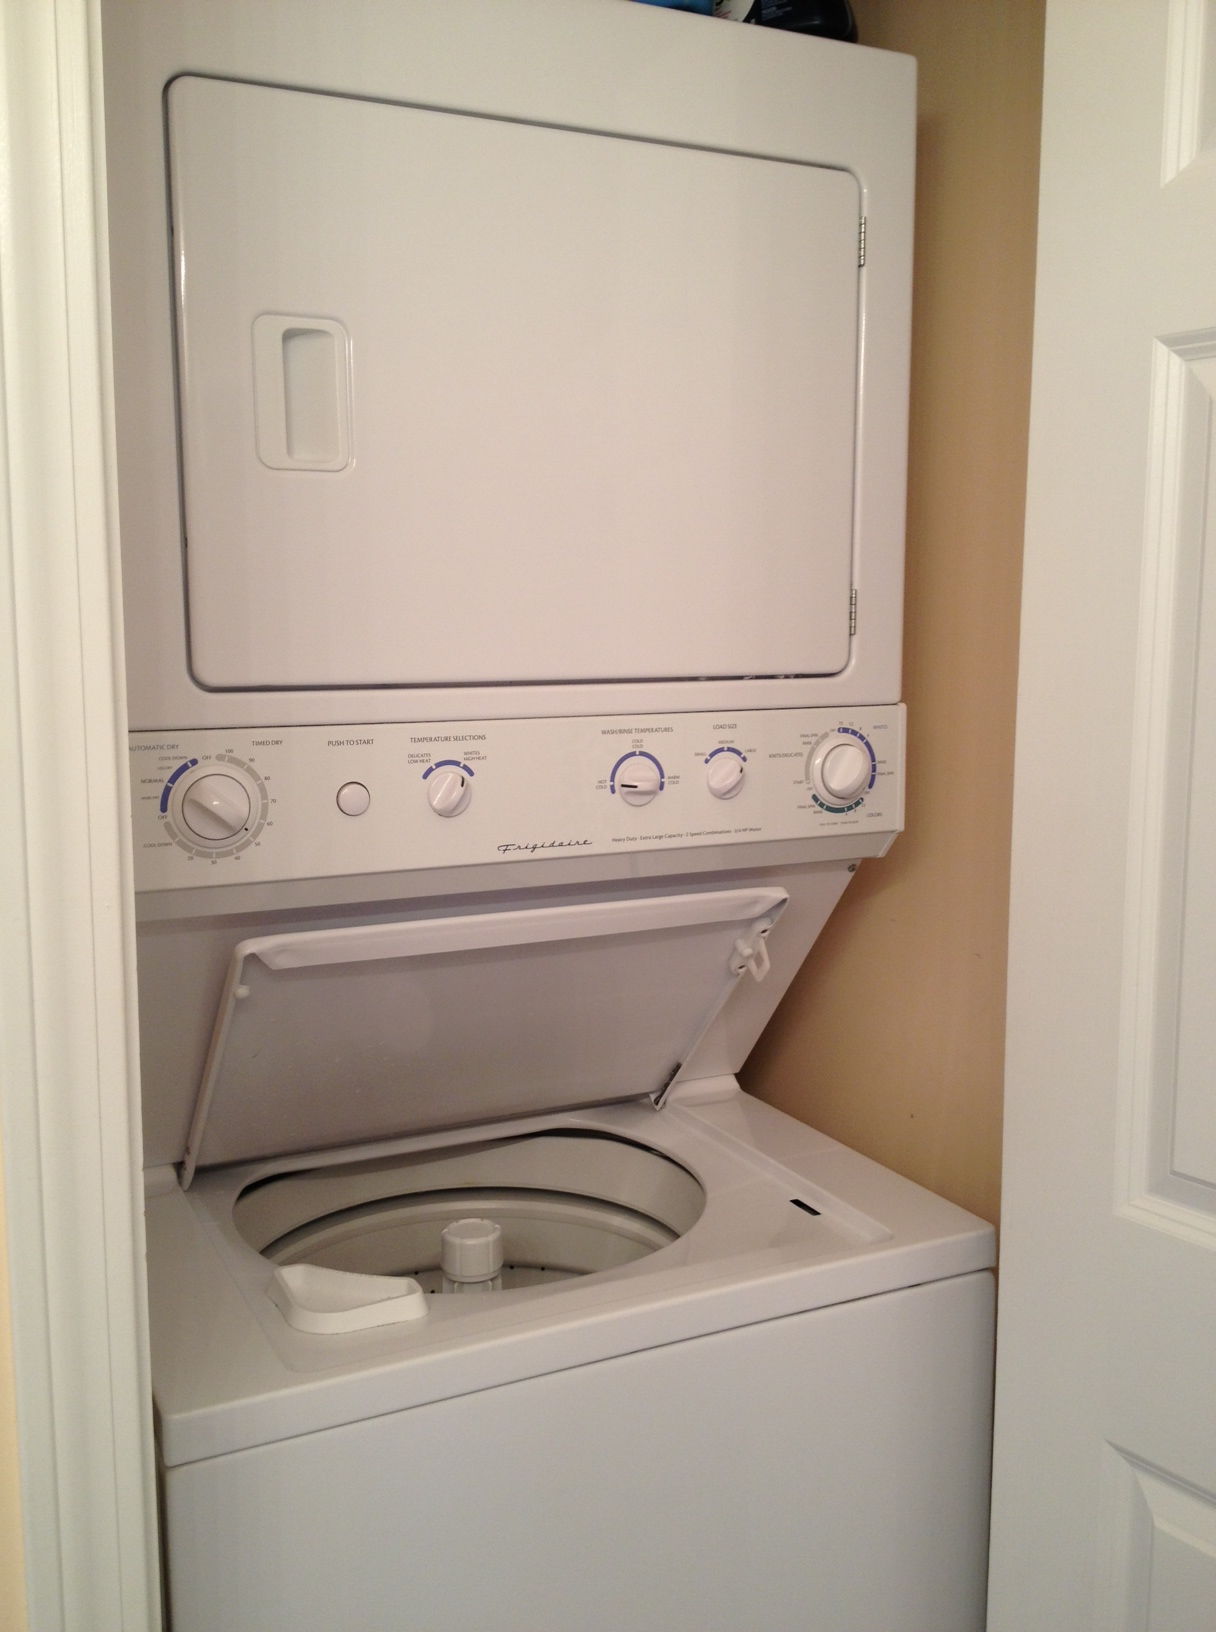 washer and dryer dimensions full size stackable washer and dryer